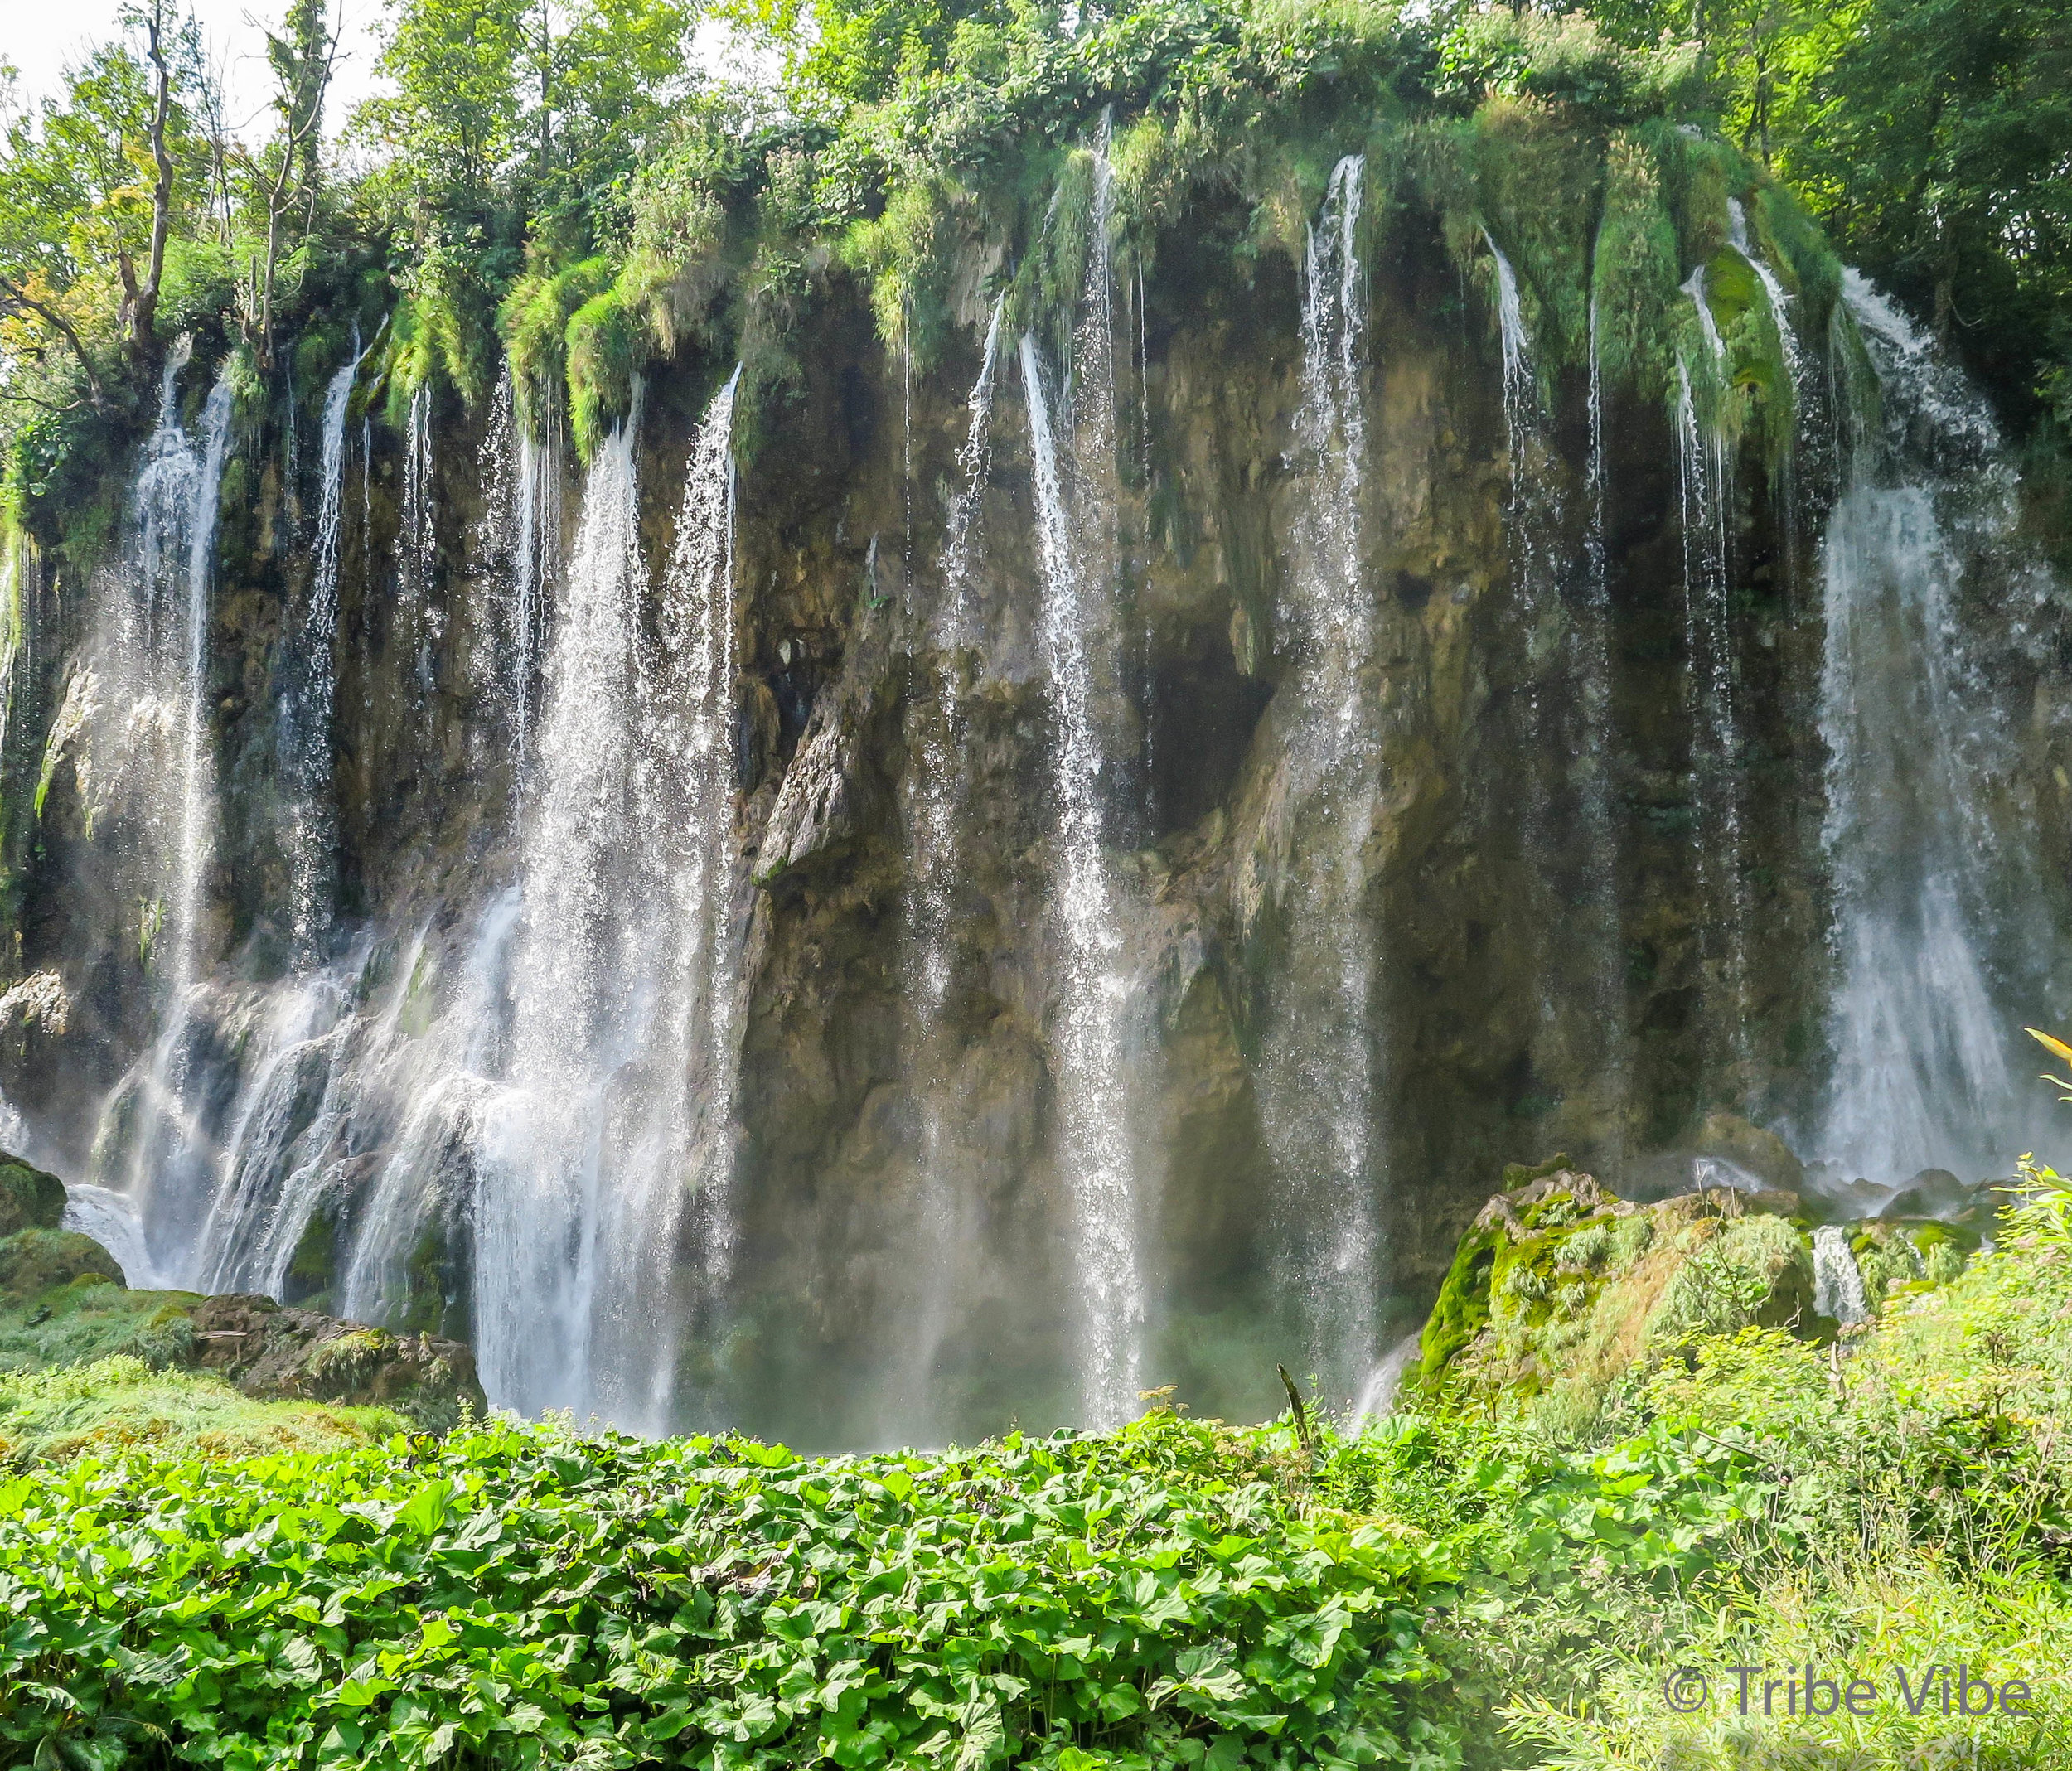 Croatia Road Trip. Plitvice Lakes National Park. A perfect day hike surrounded by waterfalls.